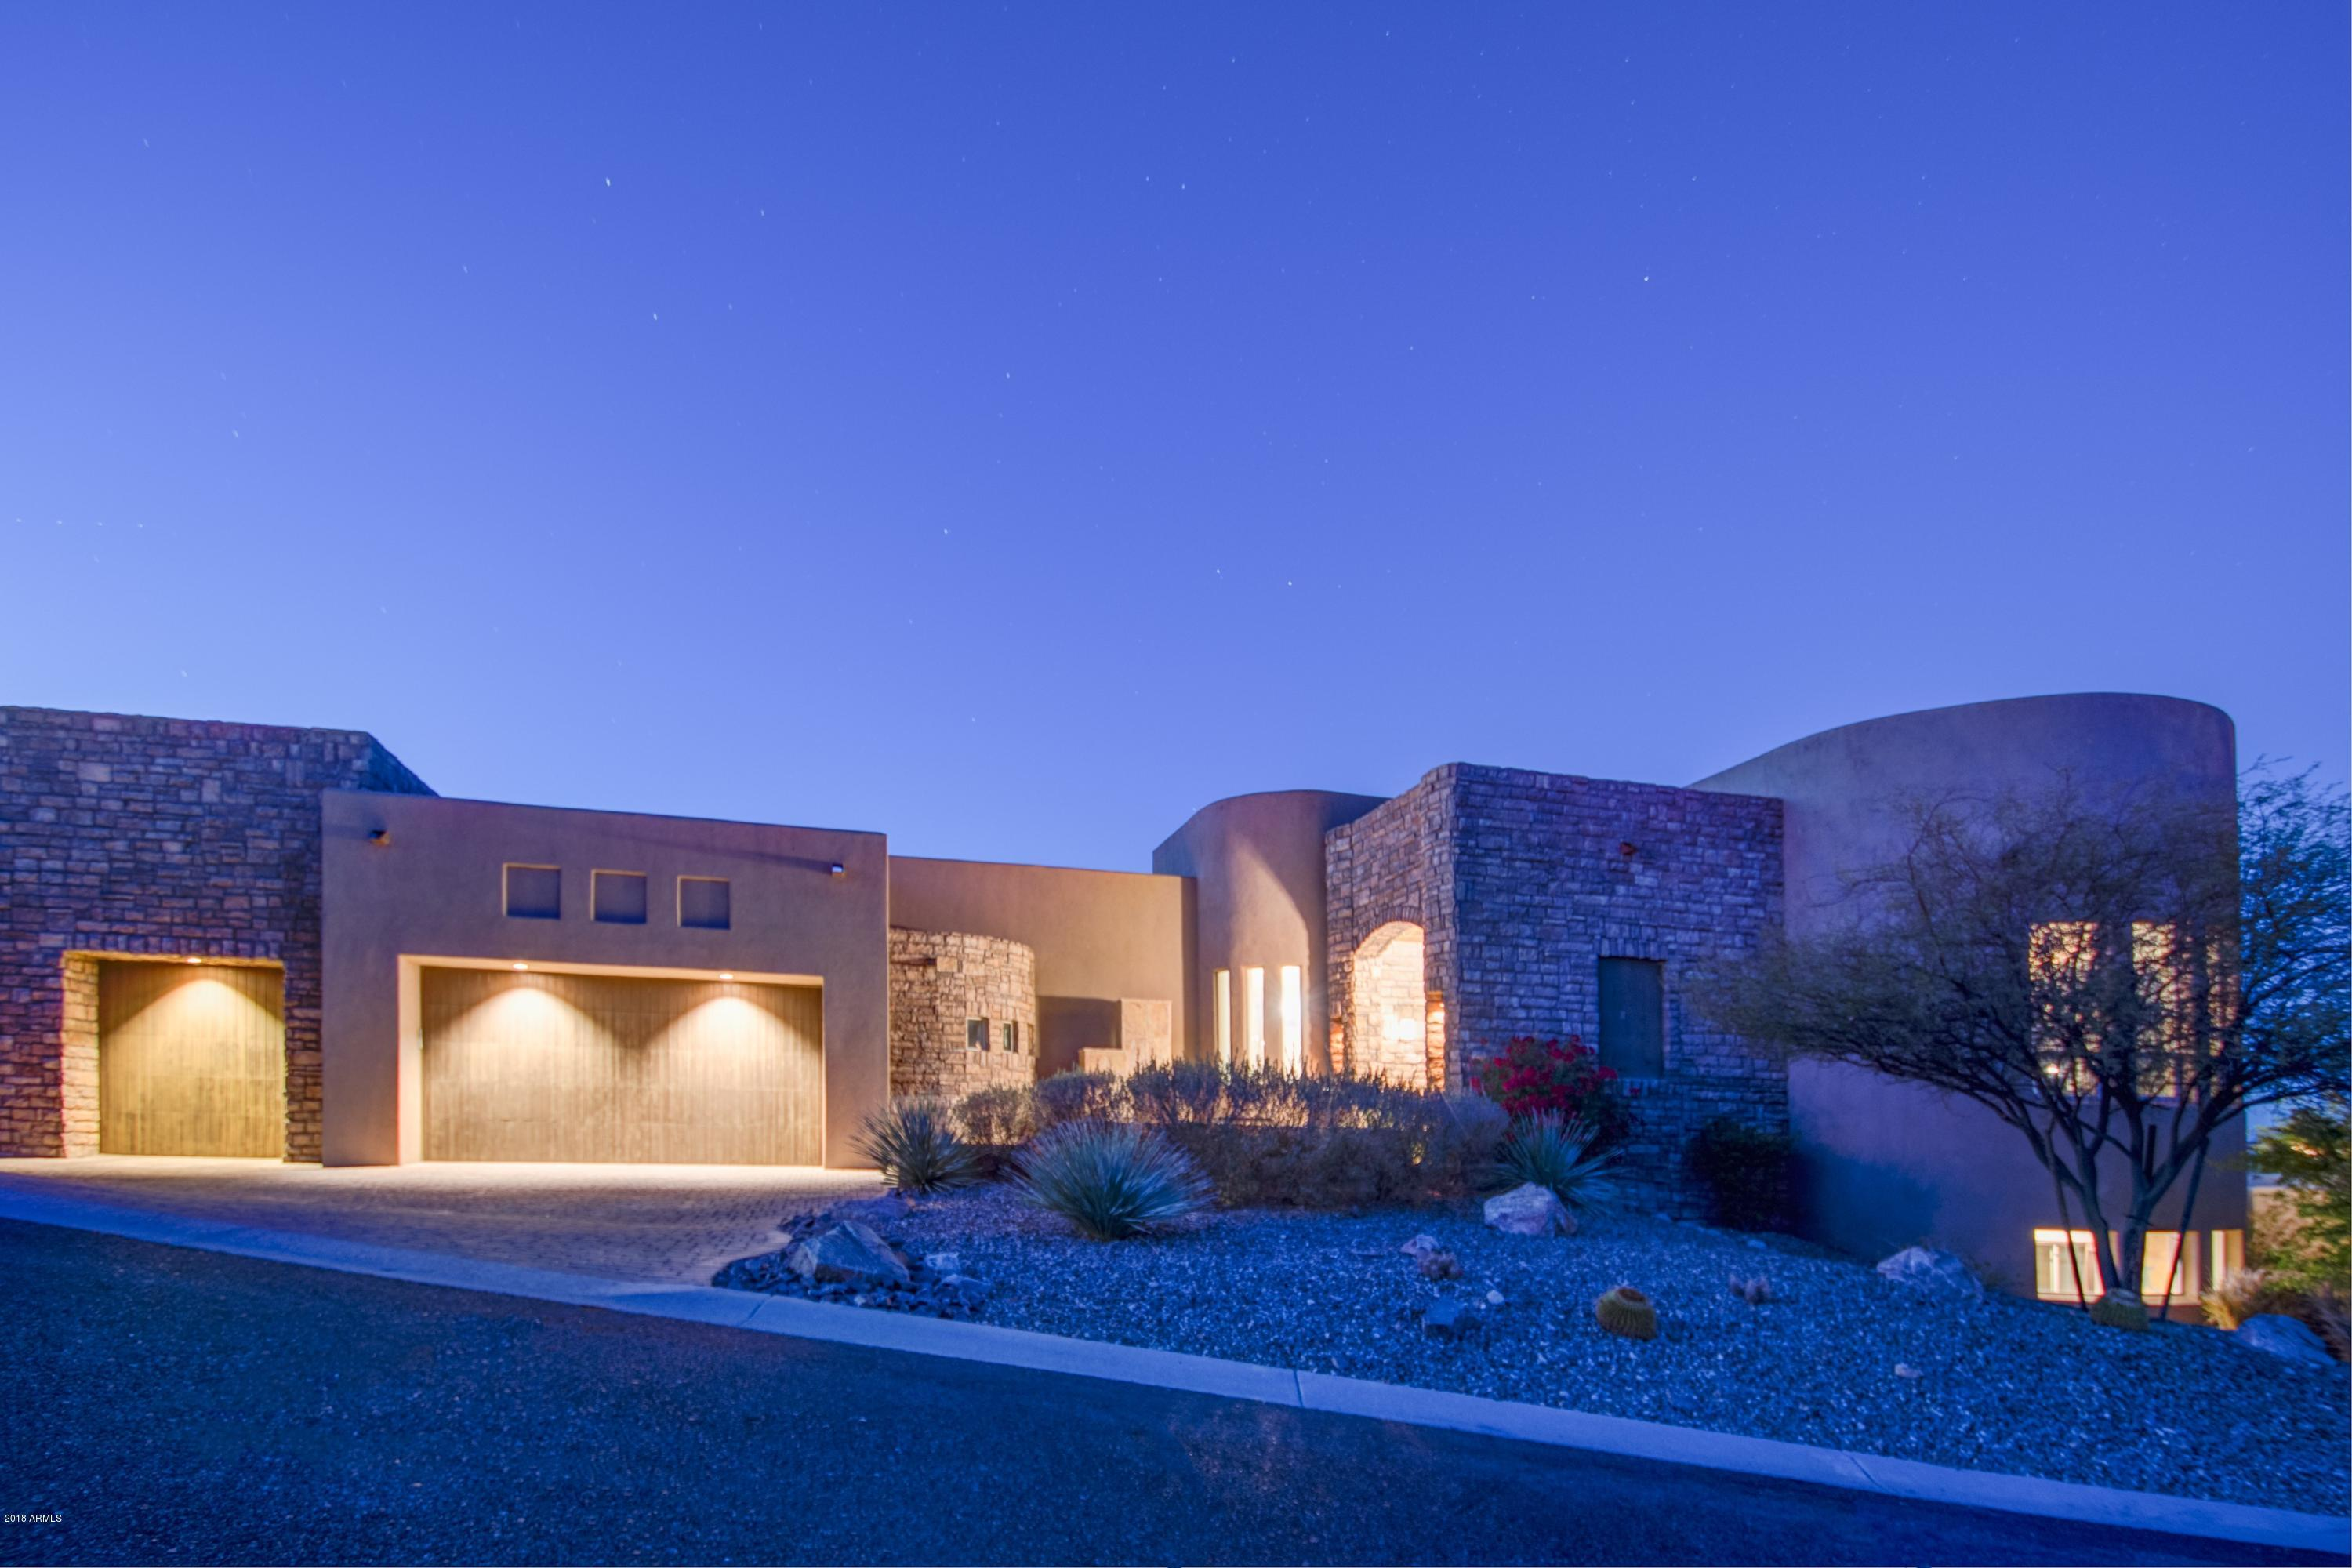 MLS 5708427 15424 E SUNDOWN Drive, Fountain Hills, AZ 85268 Fountain Hills AZ Sunridge Canyon